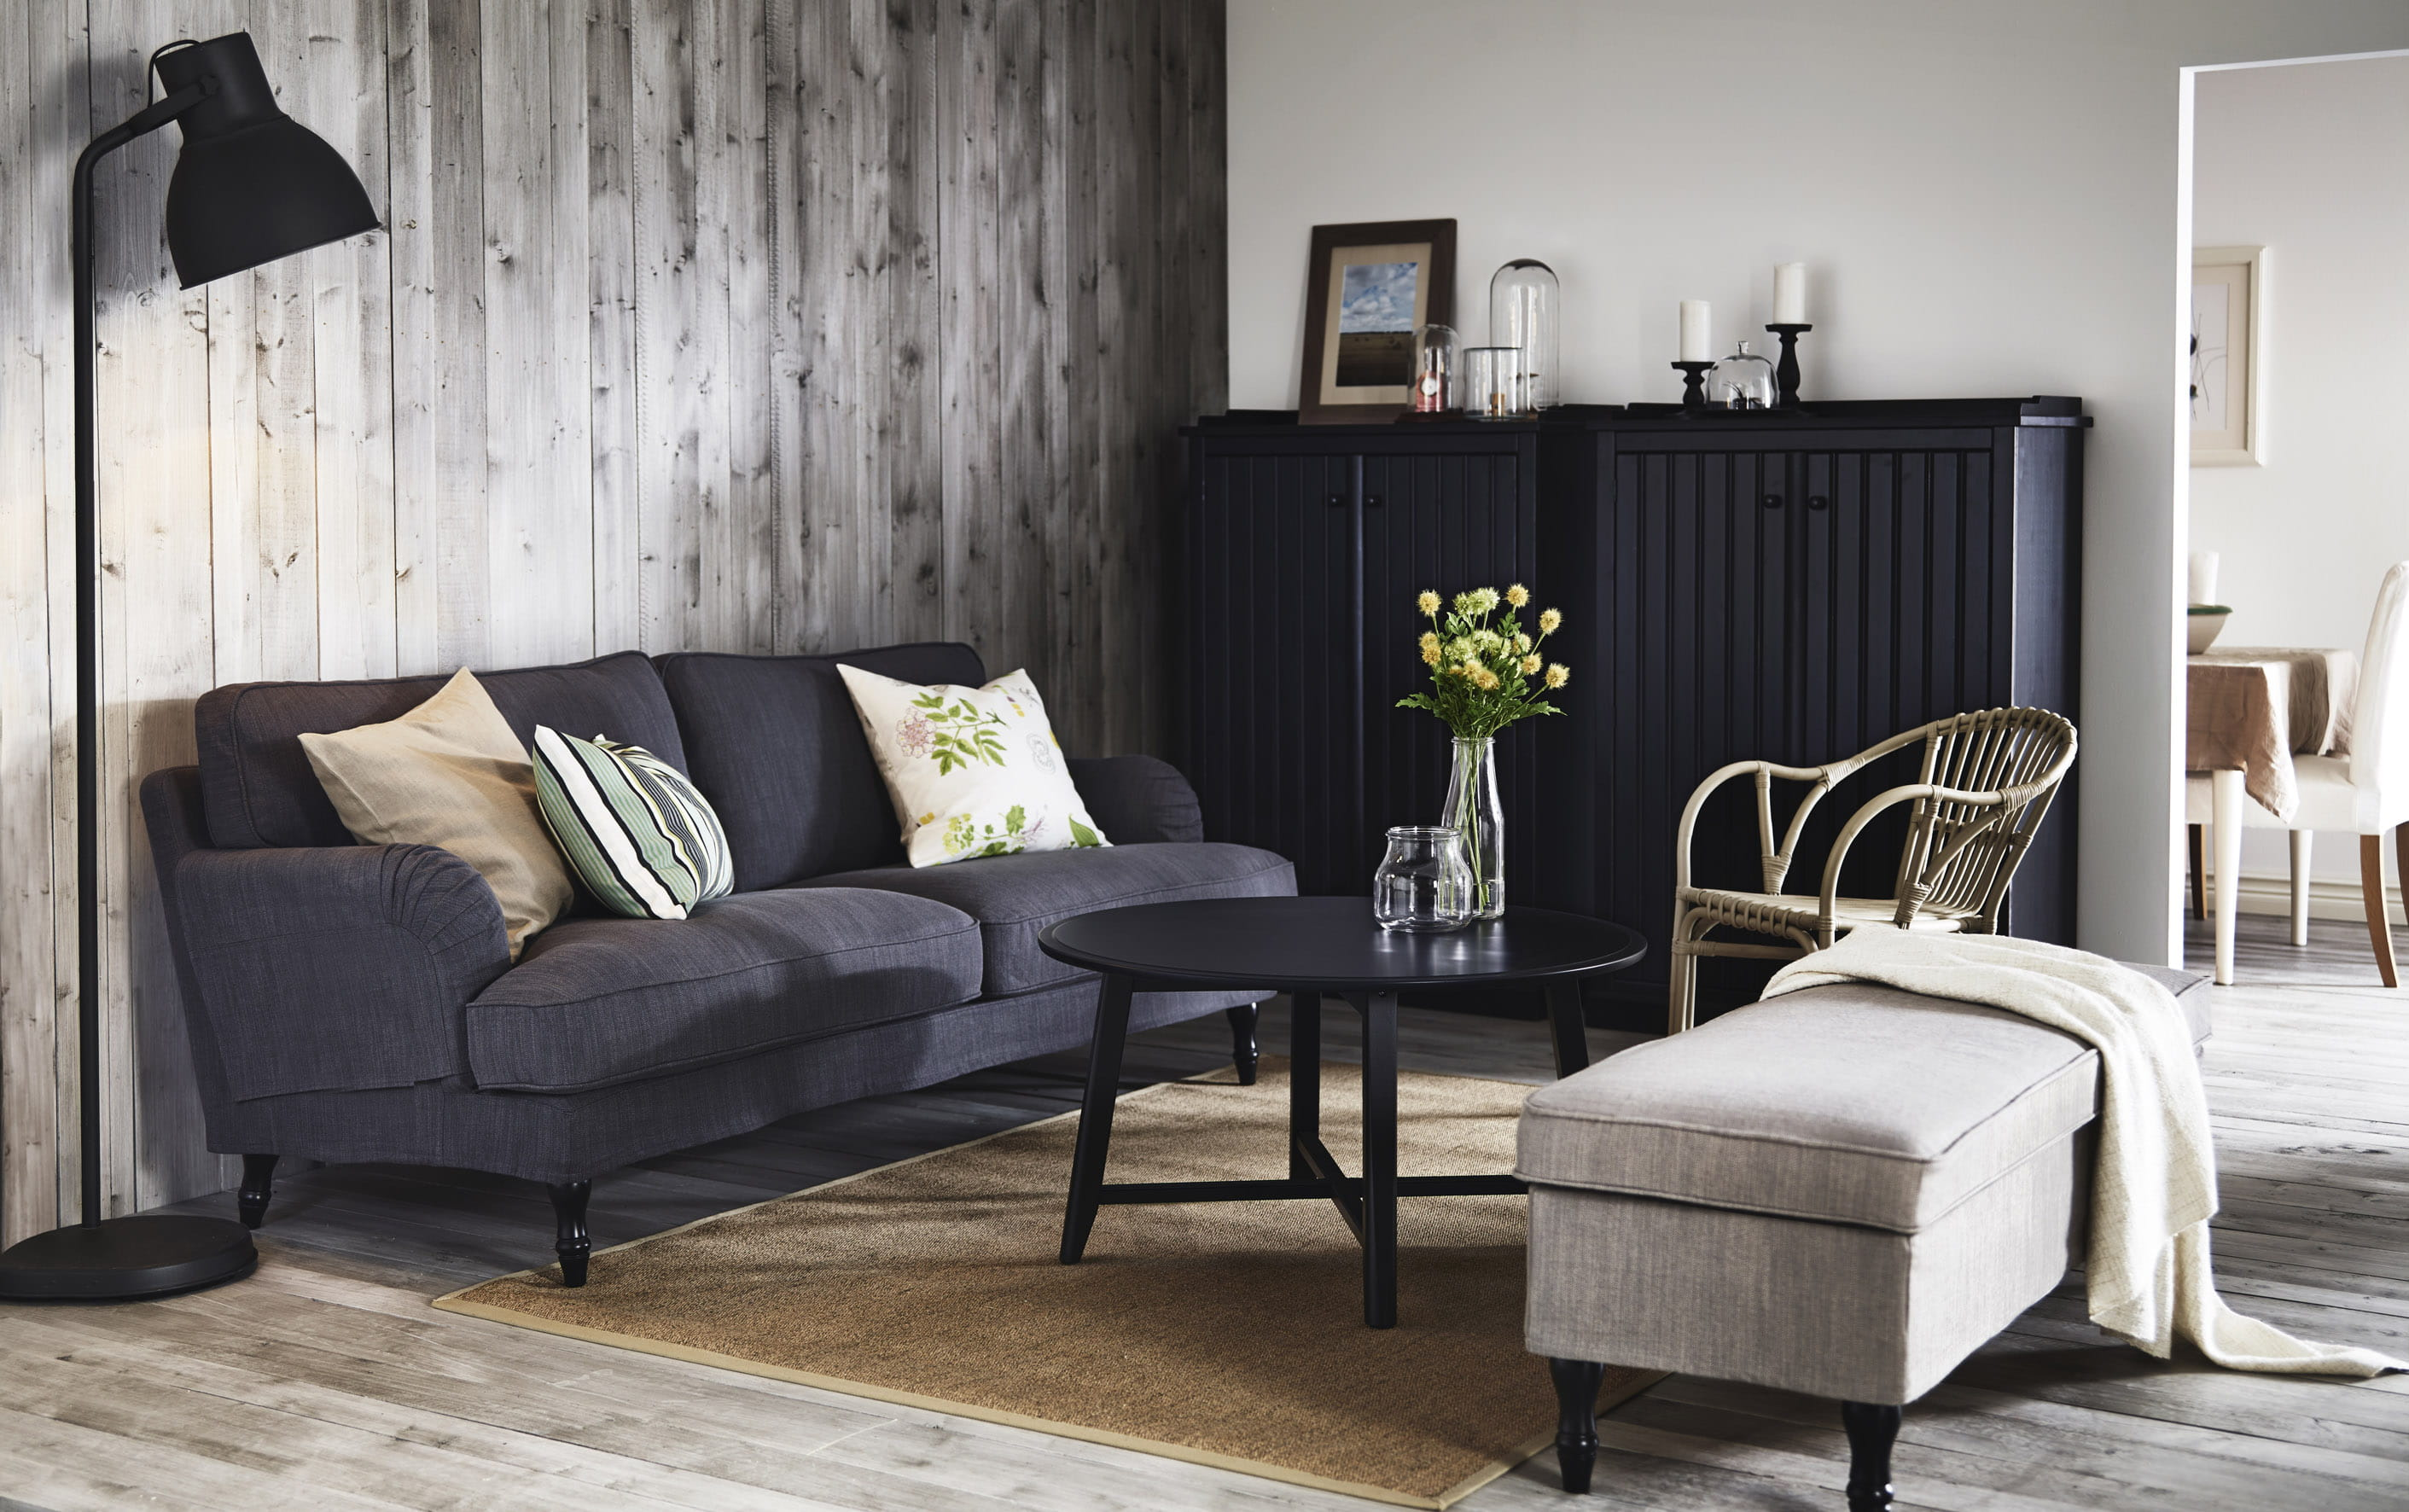 canap 3 places stocksund ikea. Black Bedroom Furniture Sets. Home Design Ideas